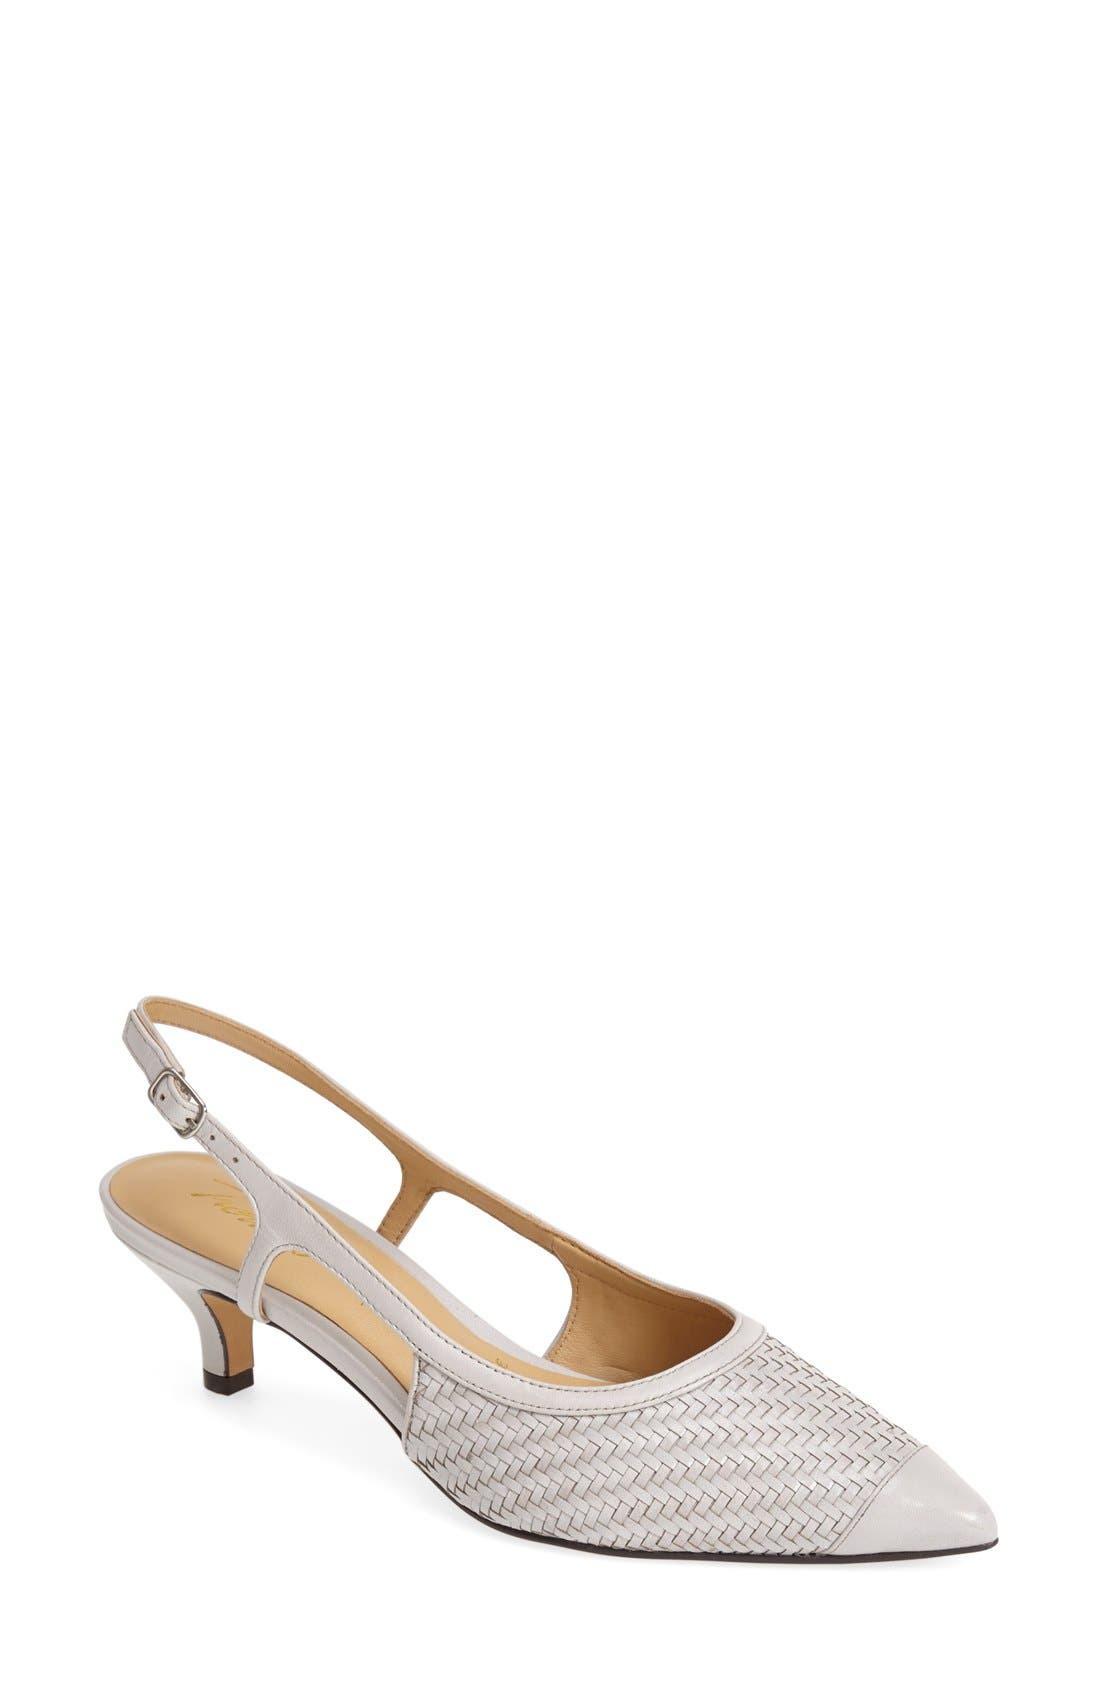 Womens Trotters Kimberly Pumps Light Grey